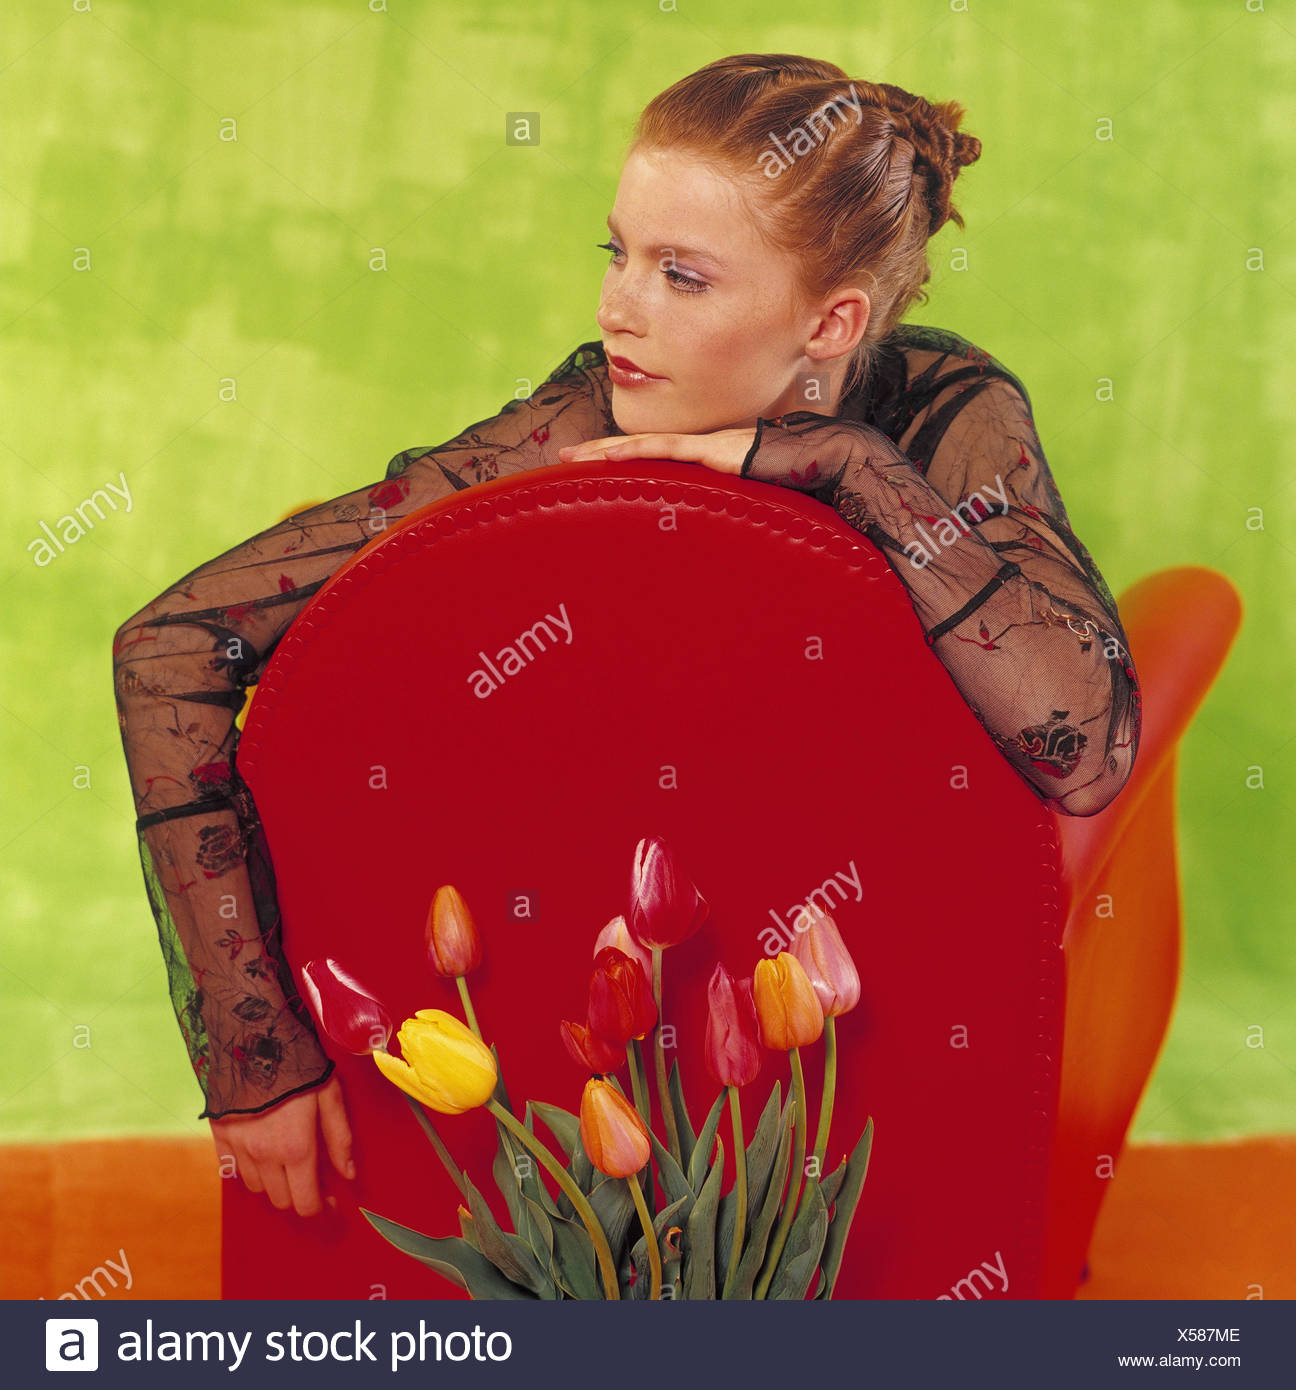 Armchairs, girls, red-haired, view side view, tulips woman, young, 15 - 20 years, hairstyle, make-up, top blouse, beauty, youth, Beauty, course, naturalness, upholstered chair, back, lean, rest on, chair back, back rest, side glance, flowers, inside - Stock Image